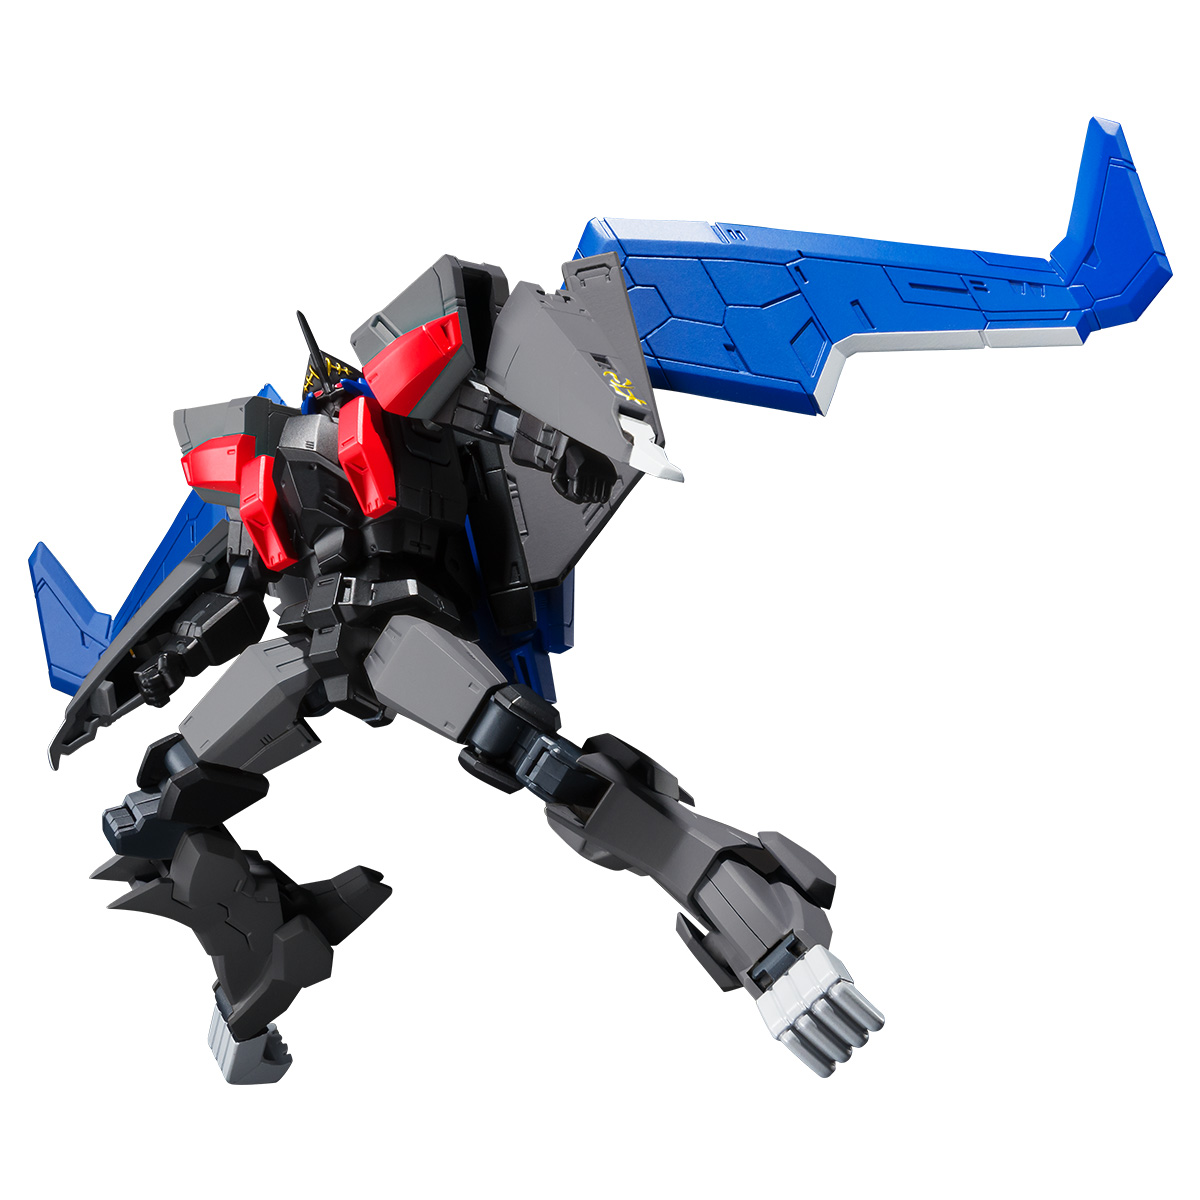 SUPER MINIPLA SUPER BEAST MACHINE GOD DANCOUGA BLACK WING